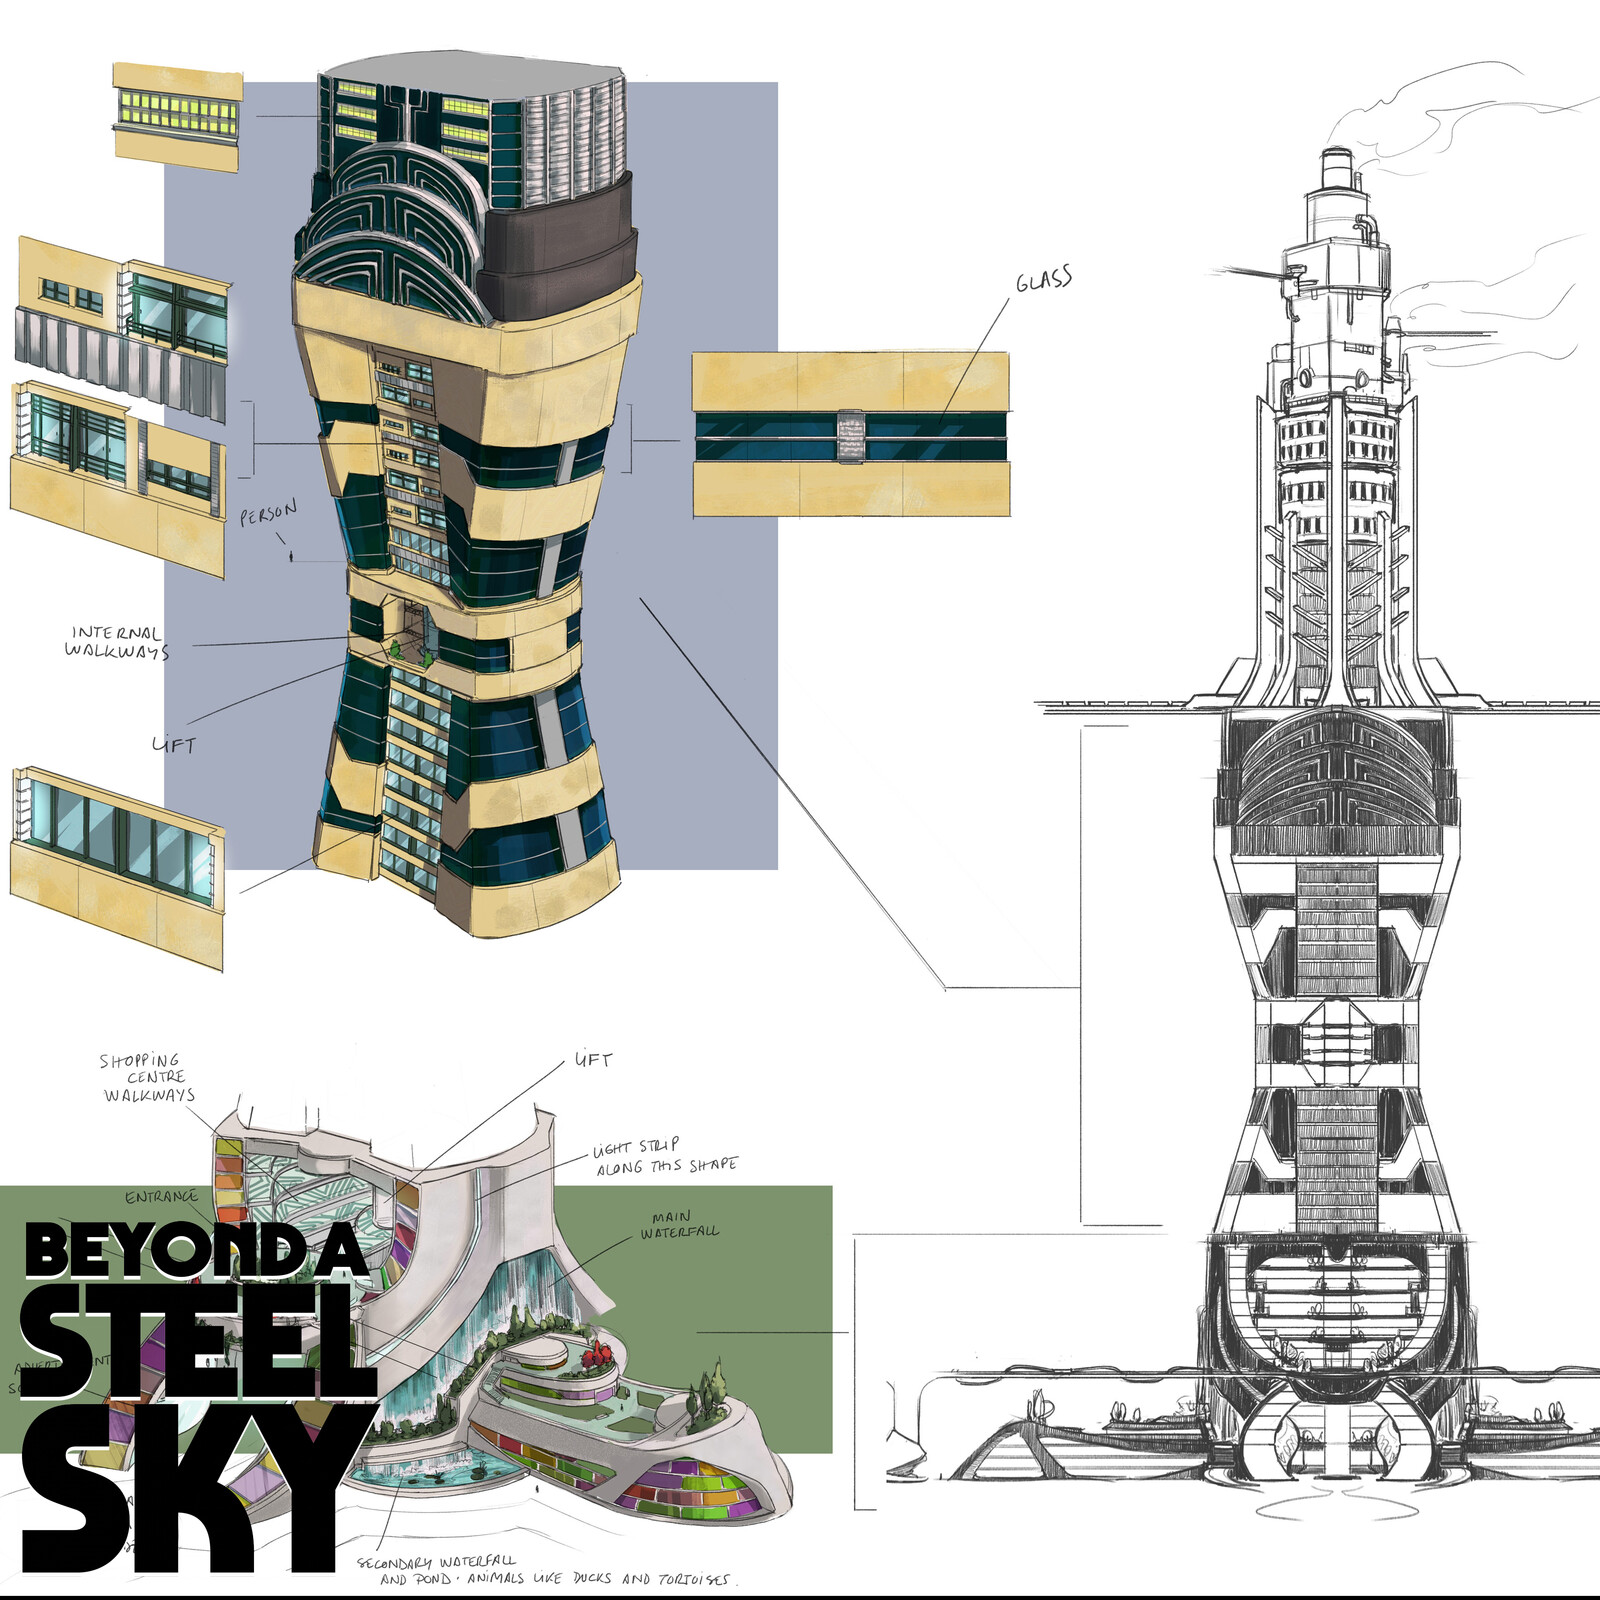 BEYOND A STEEL SKY: Union City Towers and paths_01